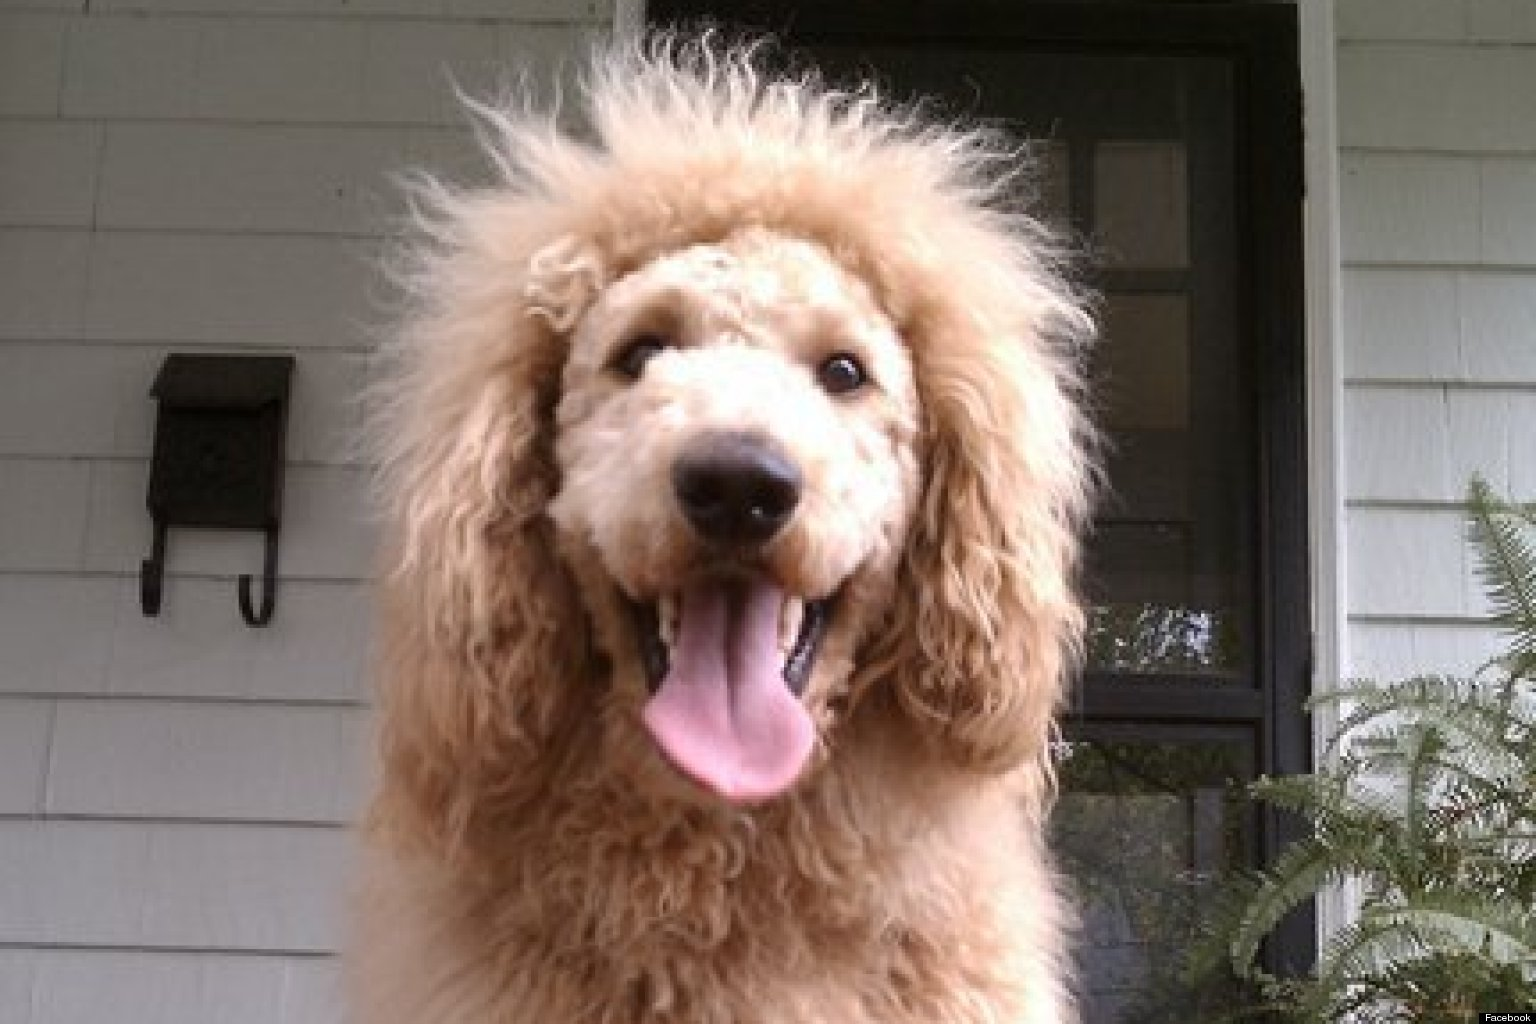 Charles The Monarch Dog Mistaken For Lion In 911 Call Photos